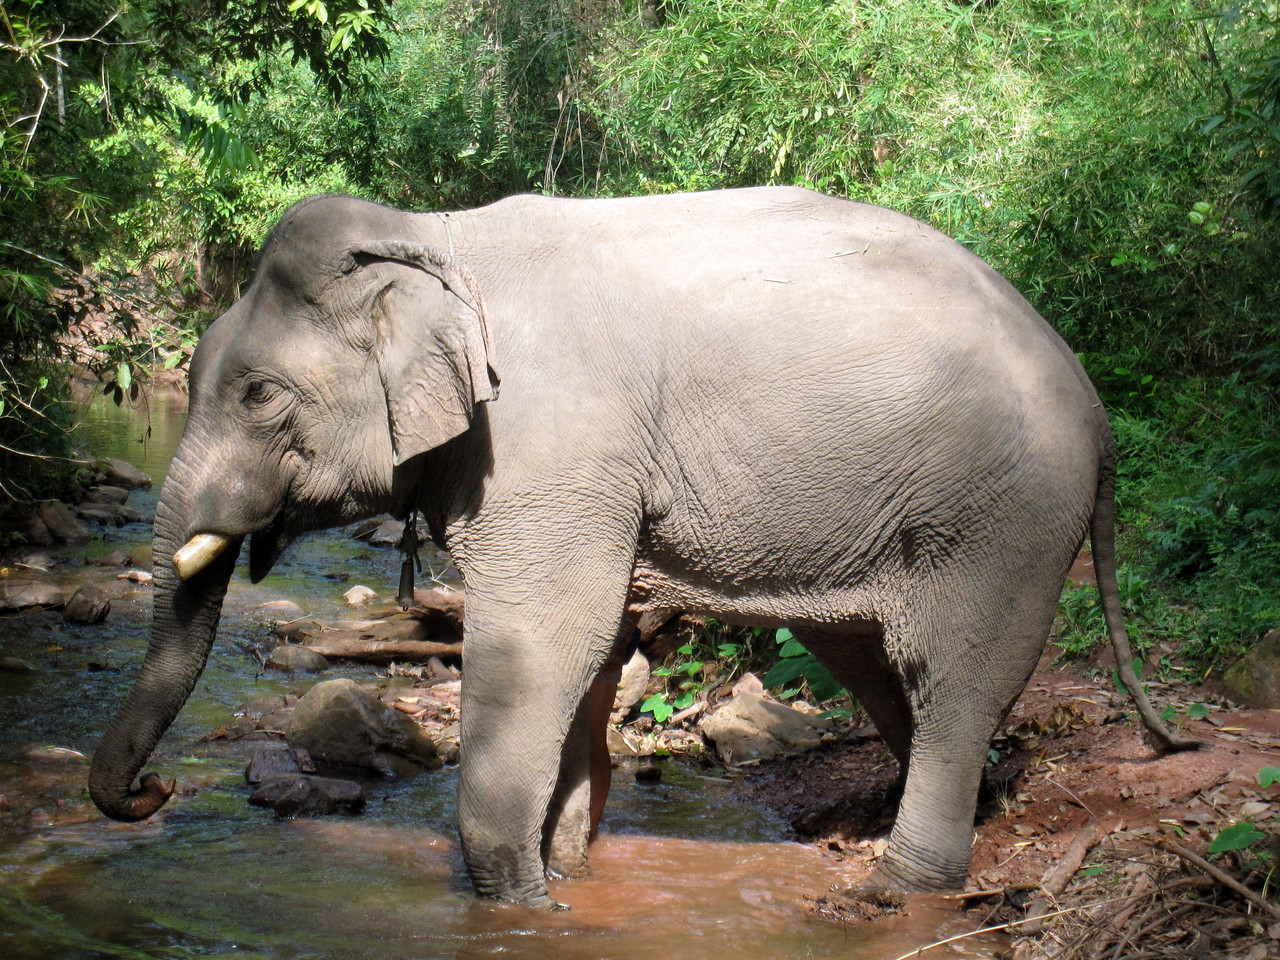 This is a bull elephant standing in the river right before his bath.